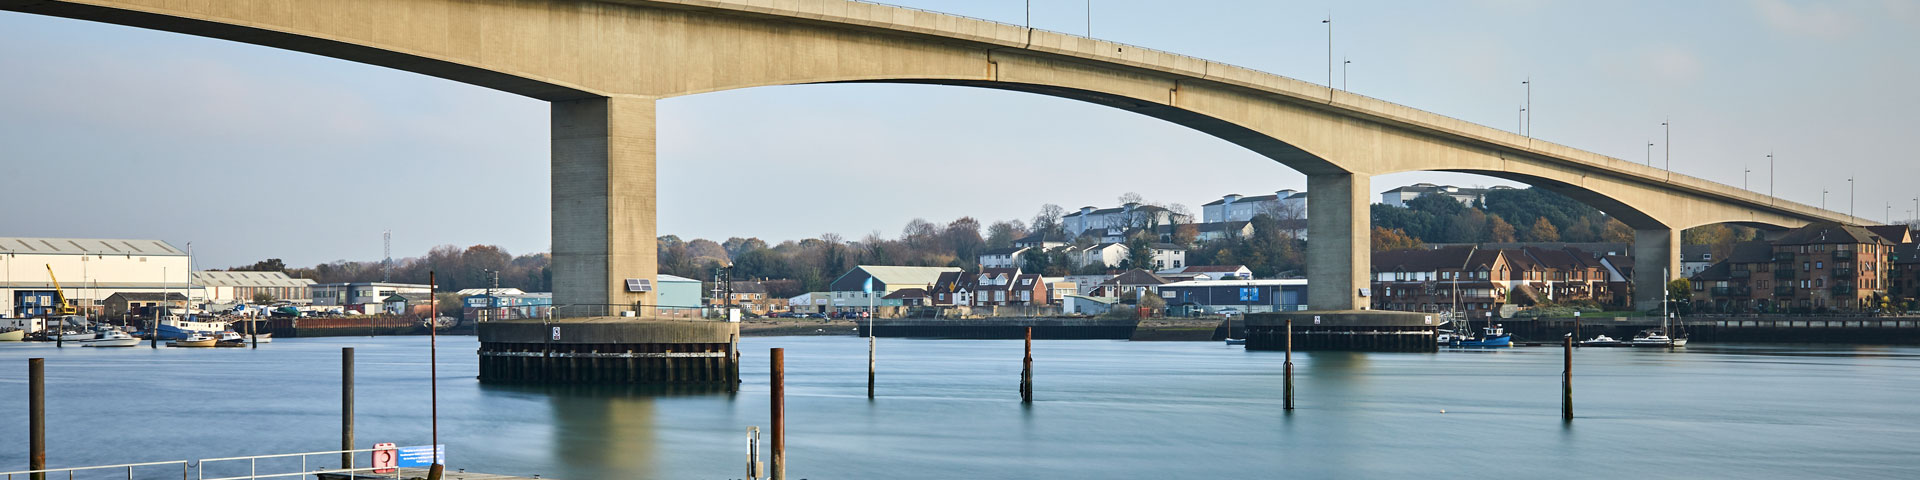 A view of the Itchen Bridge in Southampton